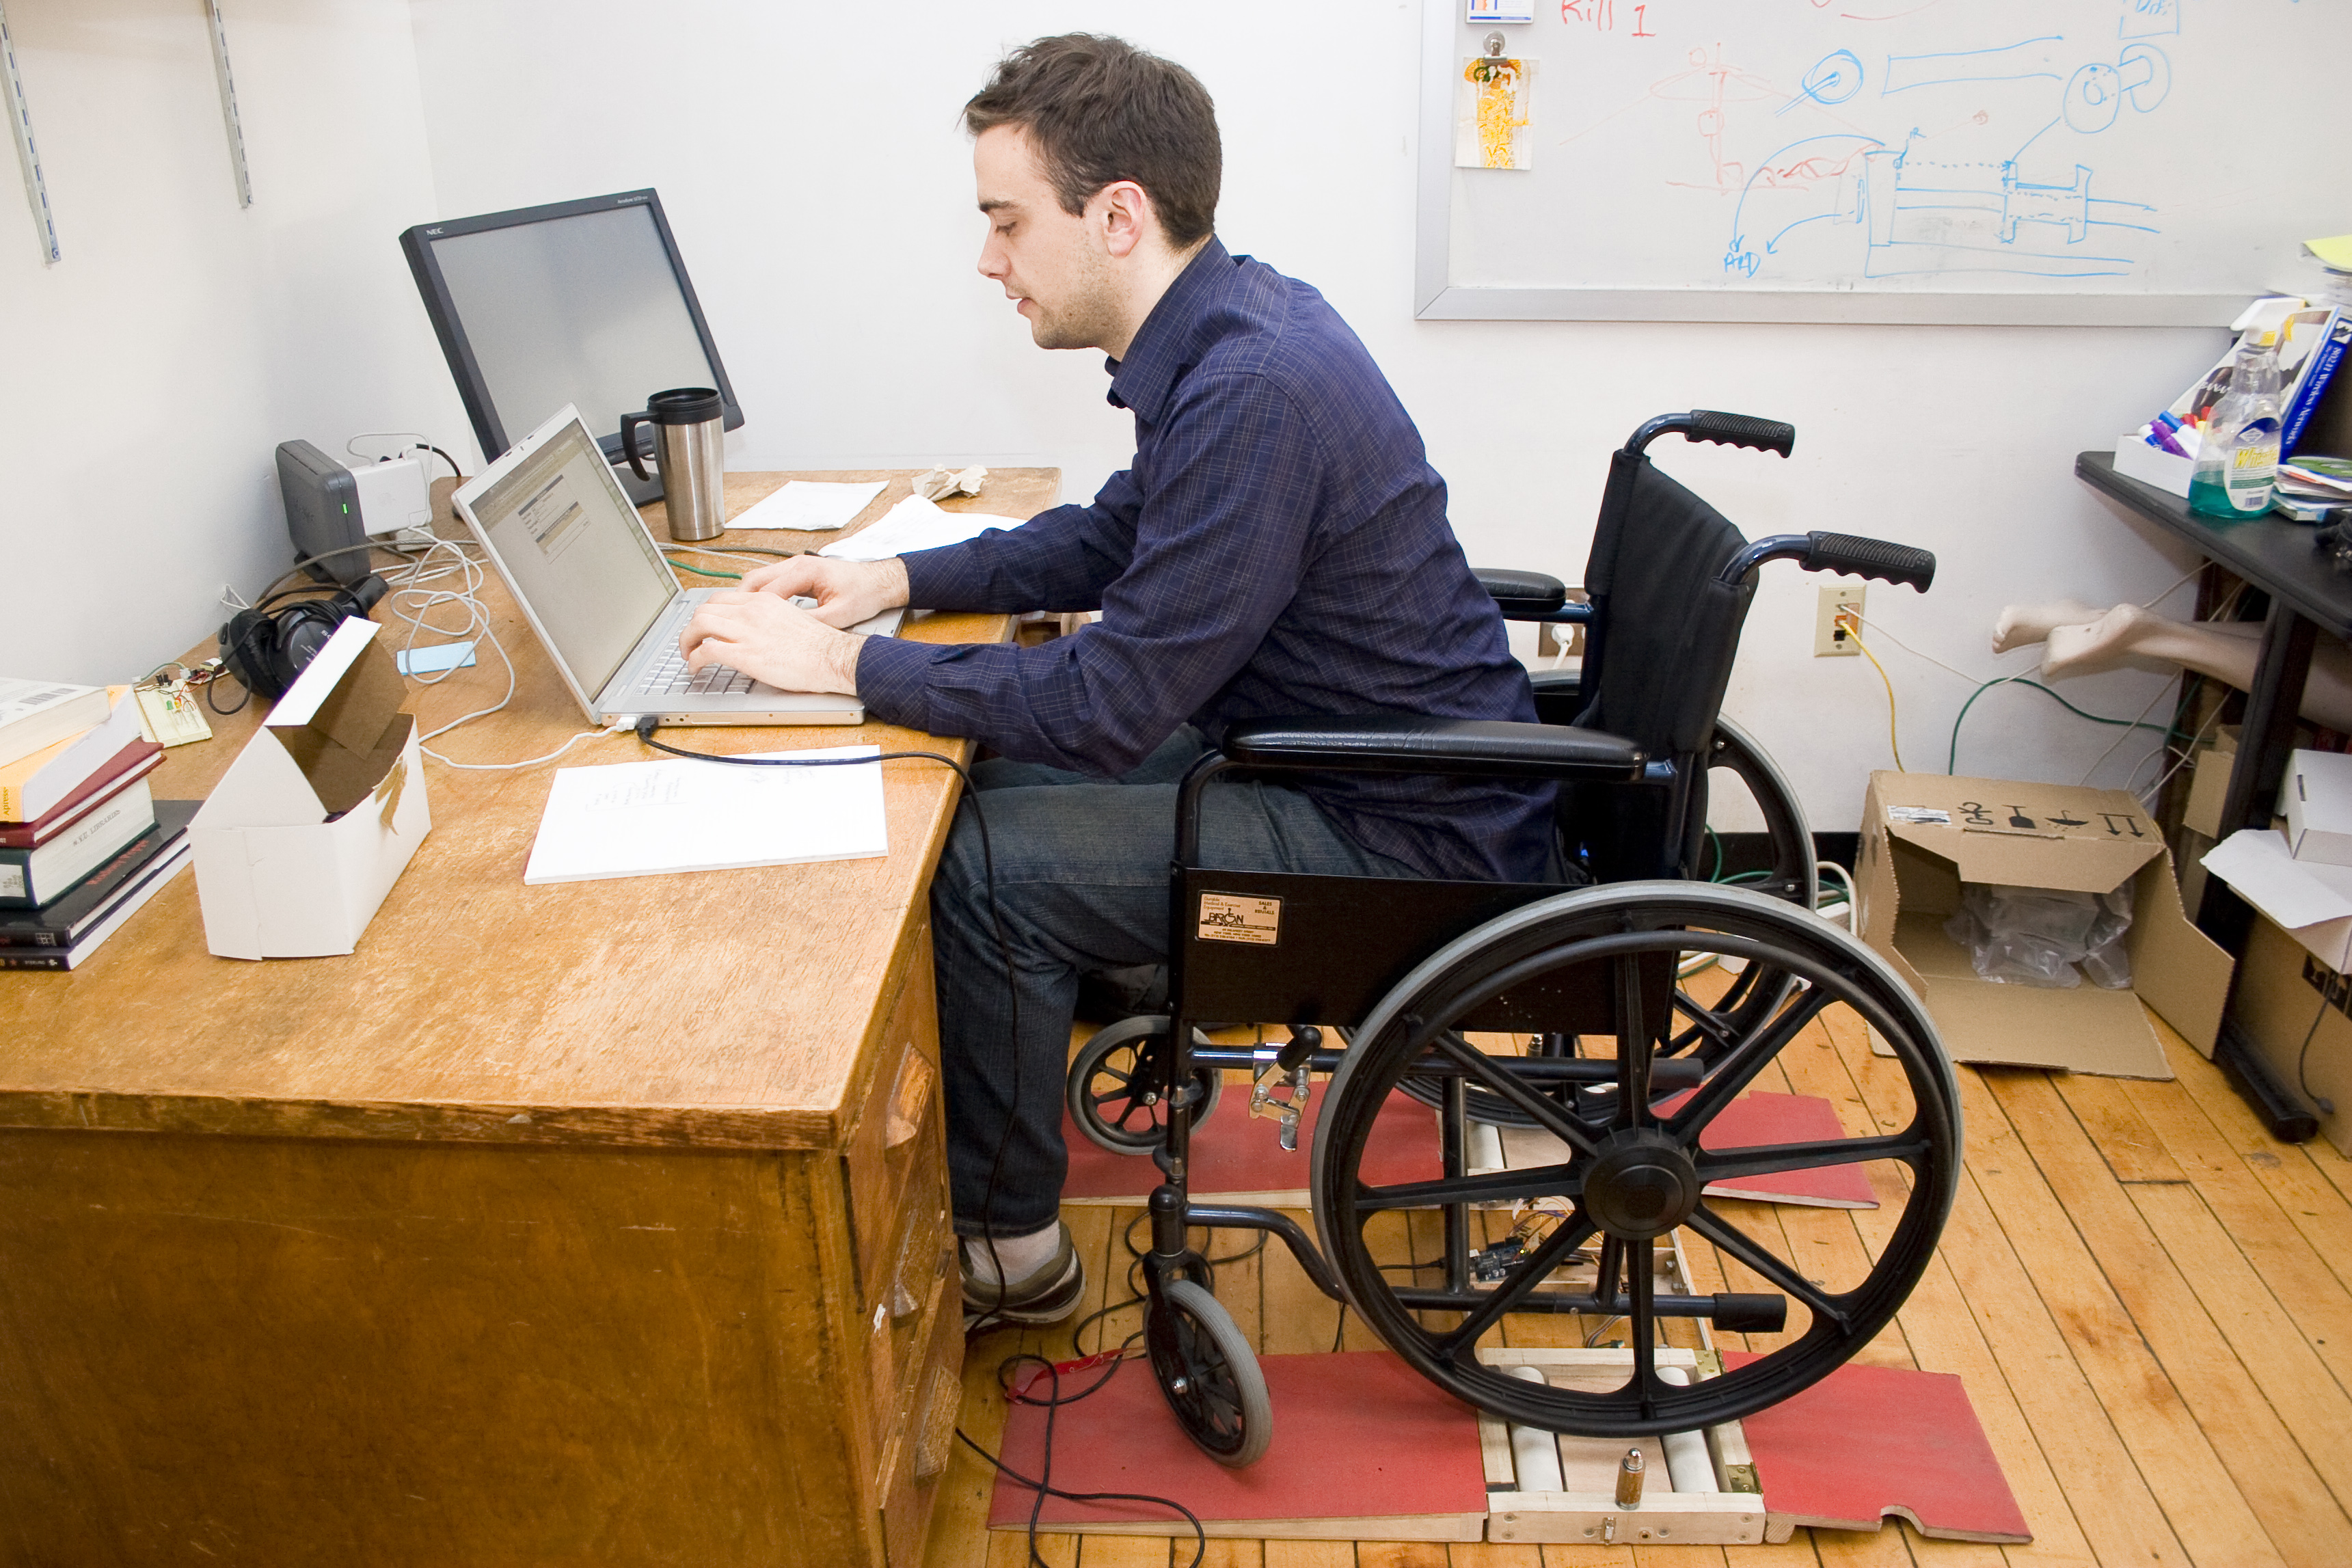 Life with Disabilities – How can the Red Panic Button Help?